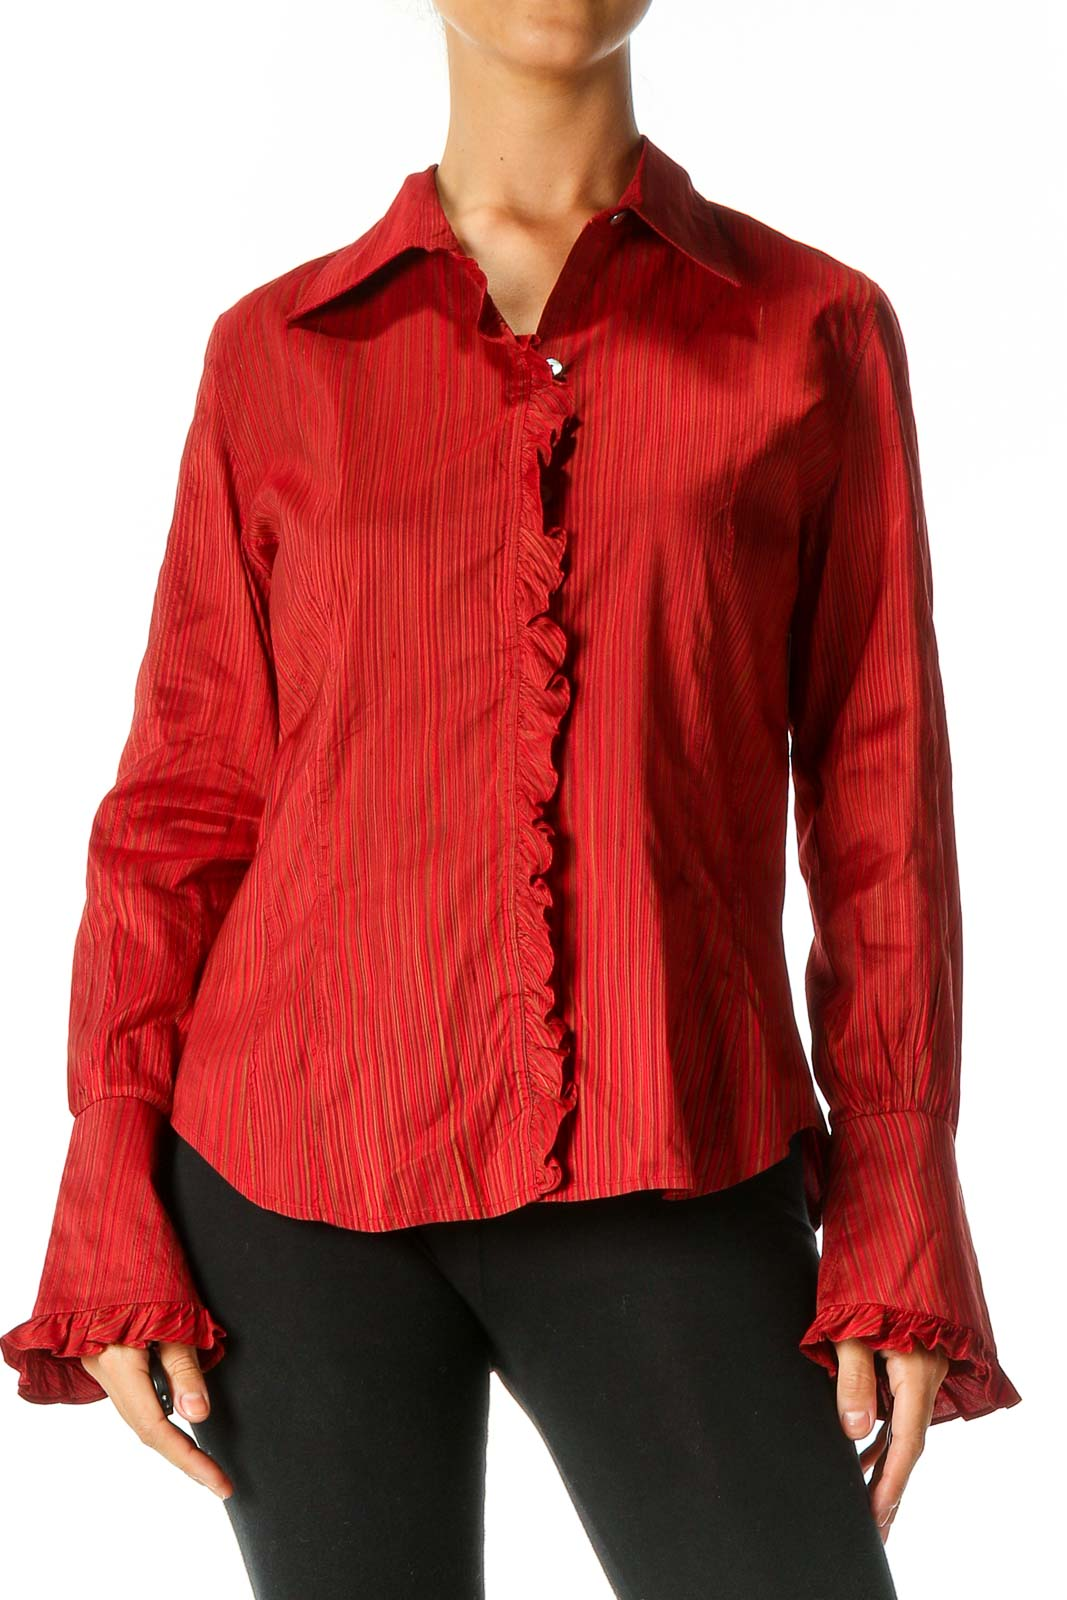 Red Striped Shirt Front